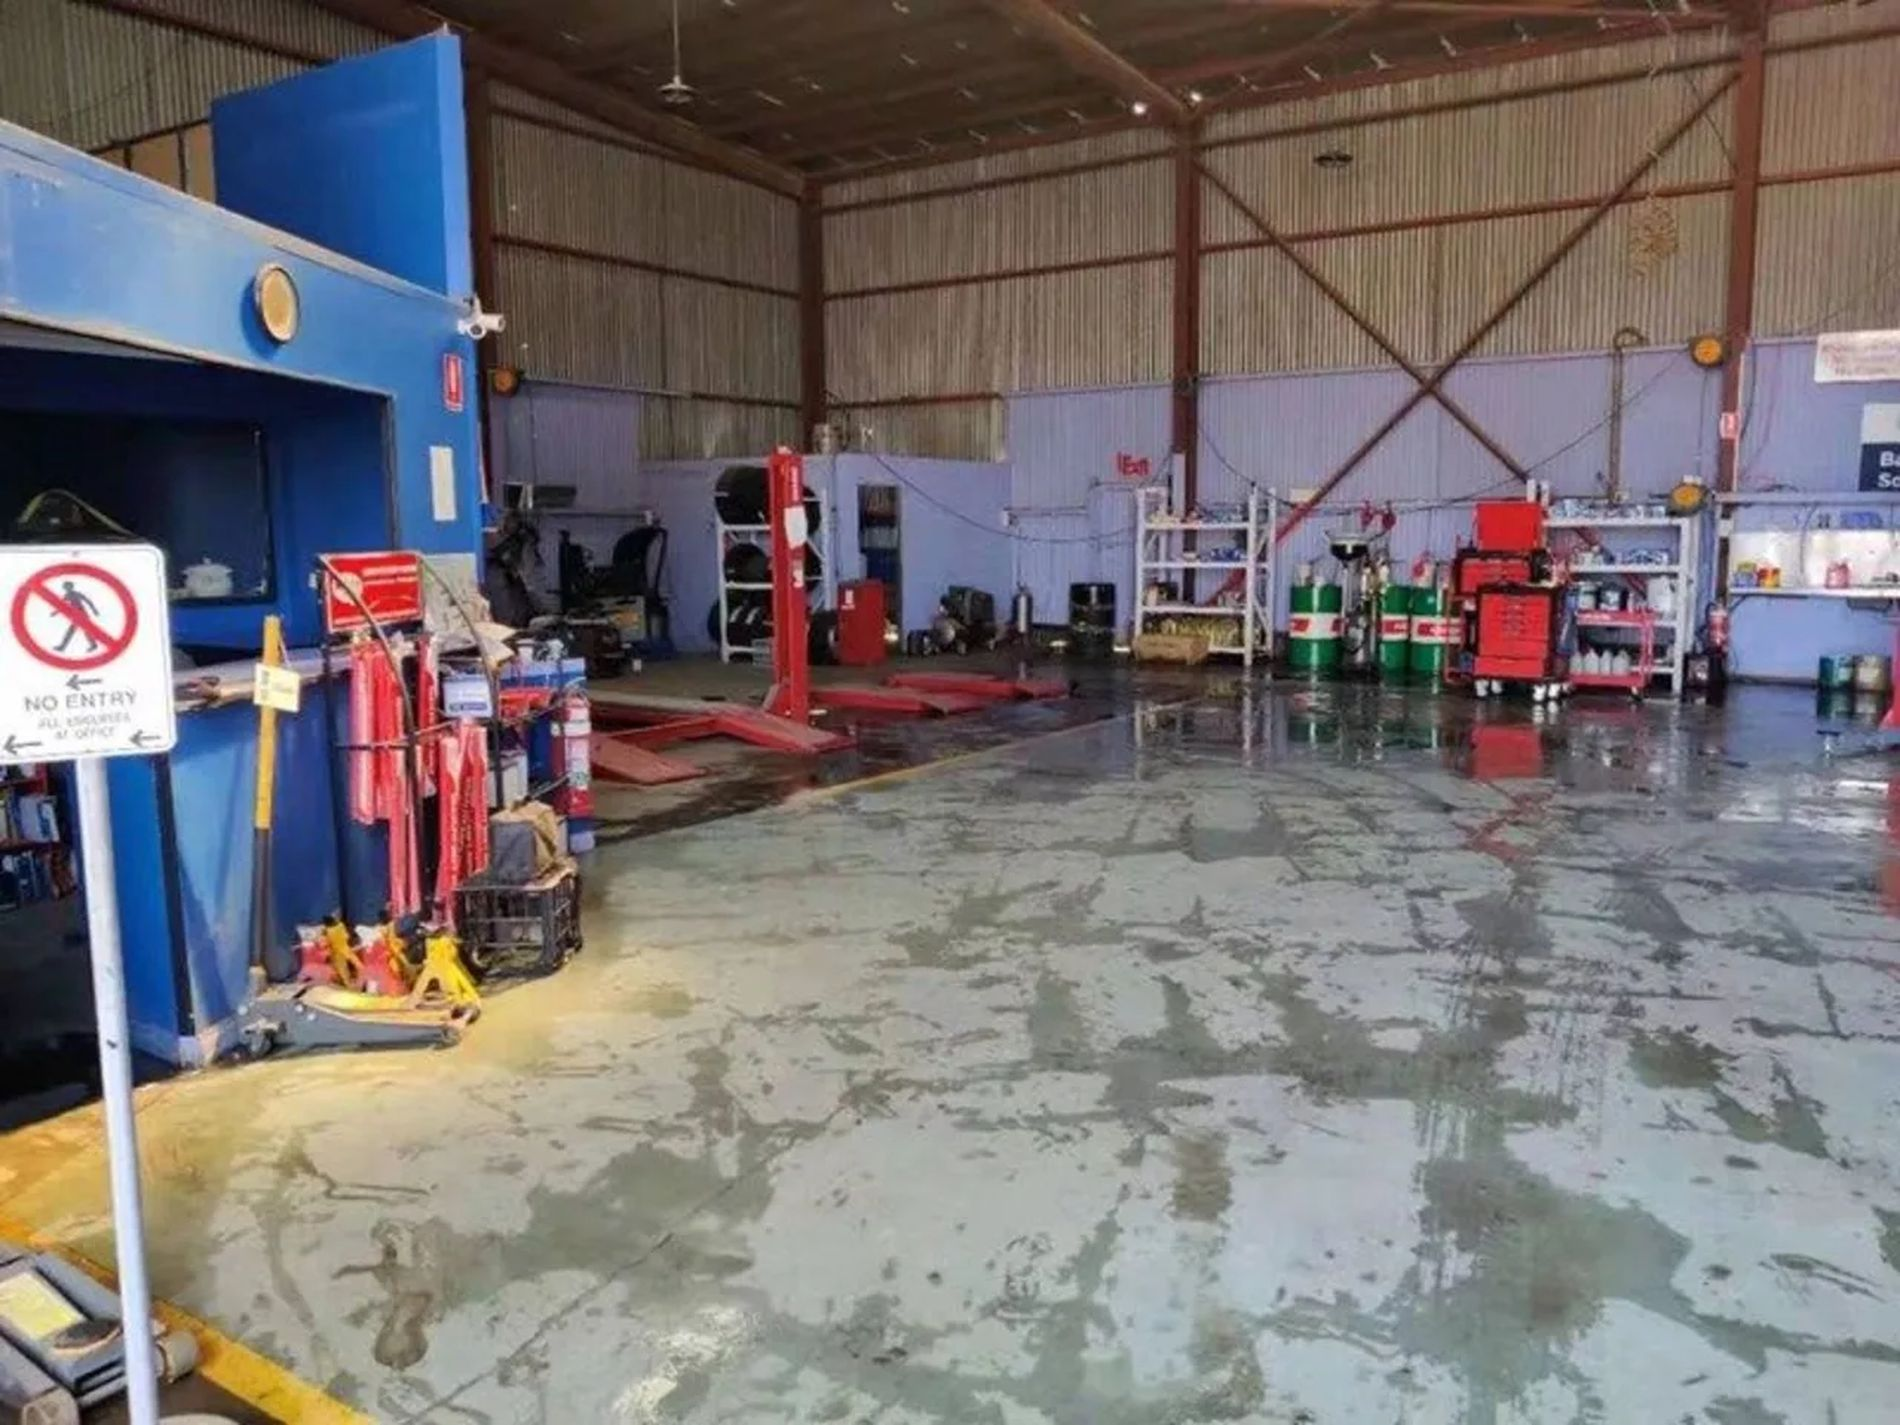 SOLD - Asset Sale Automotive Repair Workshop with 3 hoists included